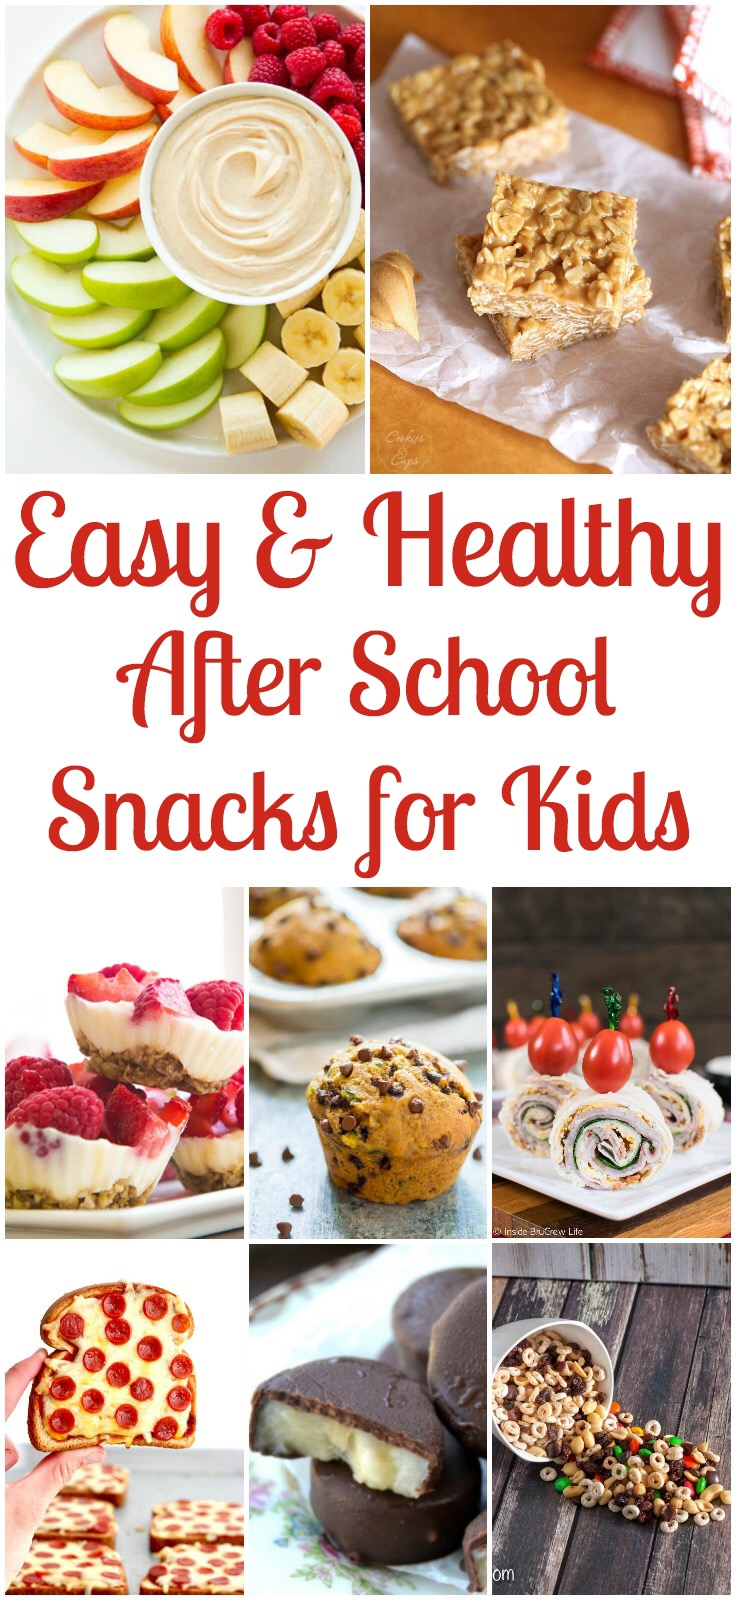 17 Easy & healthy afternoon snacks for kids, after school snacks, toddler snack ideas, yogurt dip, turkey pinwheels, pizza toast